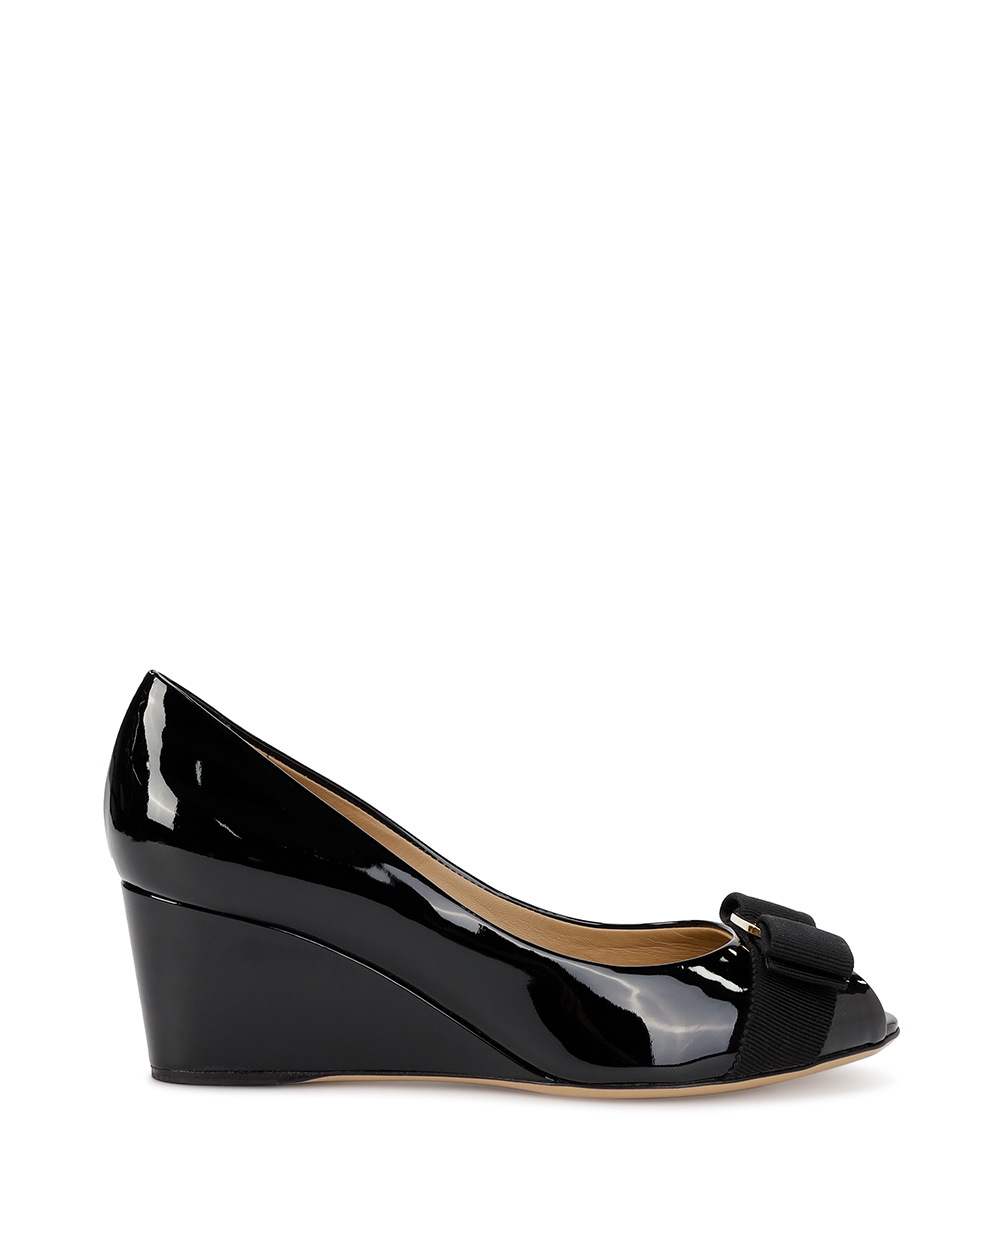 Patent Leather High Heels With Bow